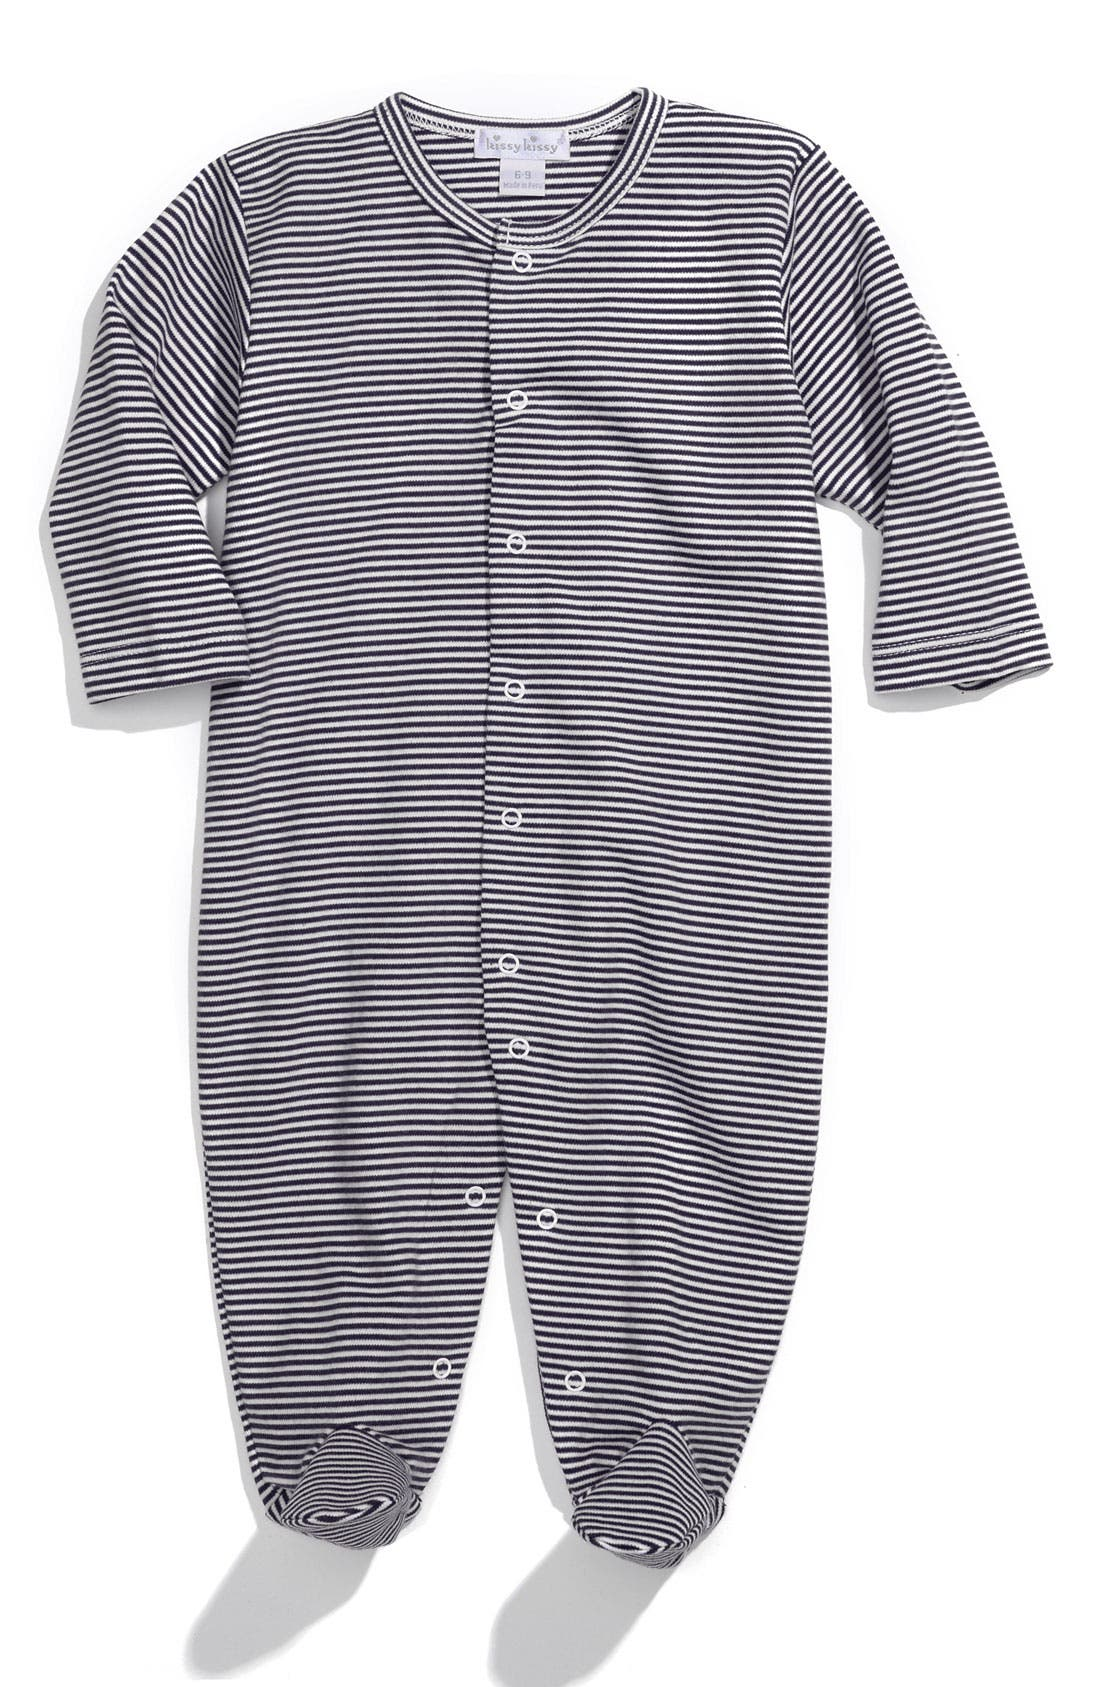 Main Image - Kissy Kissy Stripe Footie (Infant)